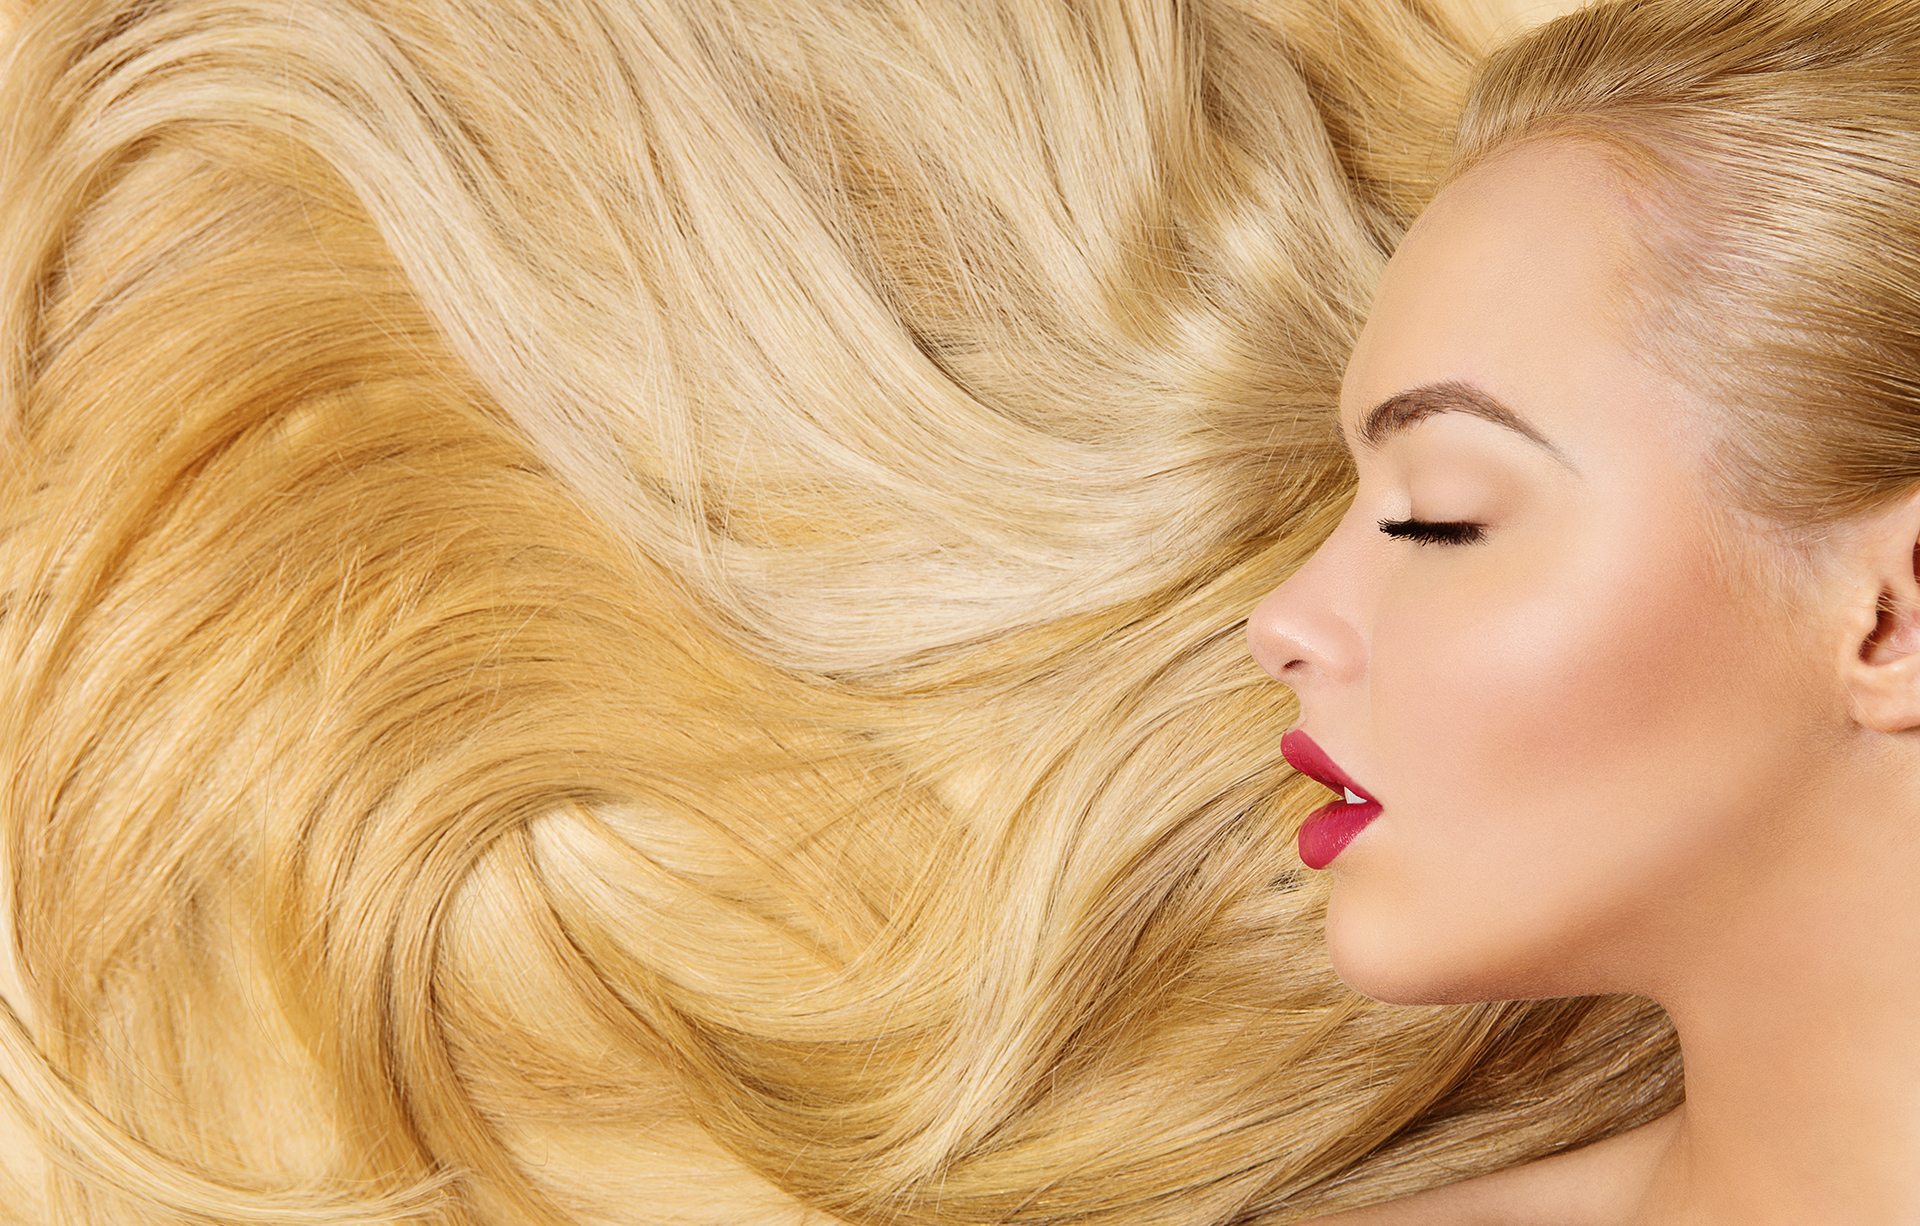 Salon ivy hair beauty salon in anchorage ak strand hair extensions over 400 varieties pmusecretfo Gallery